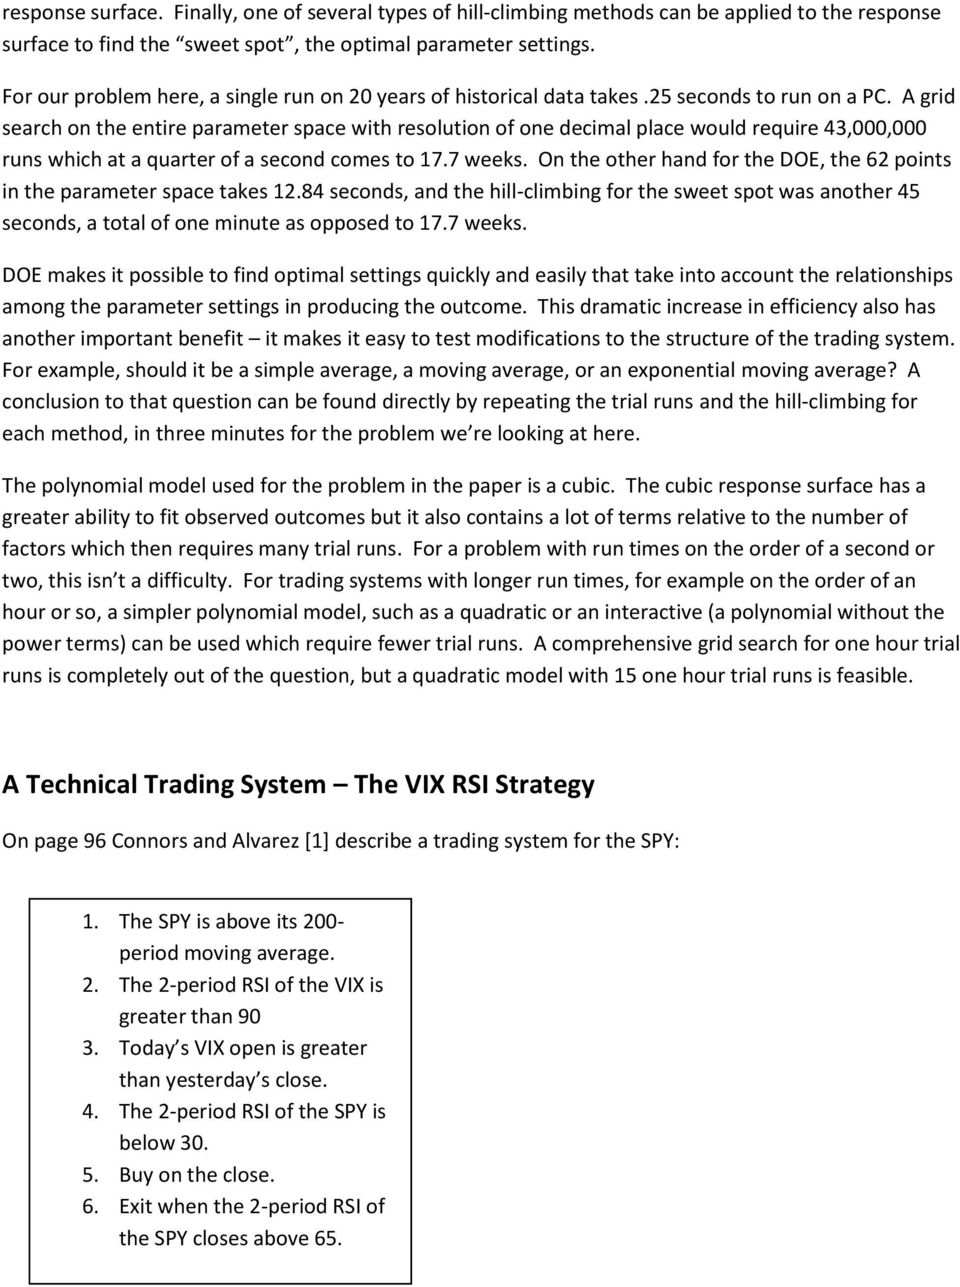 Application of Design of Experiments to an Automated Trading